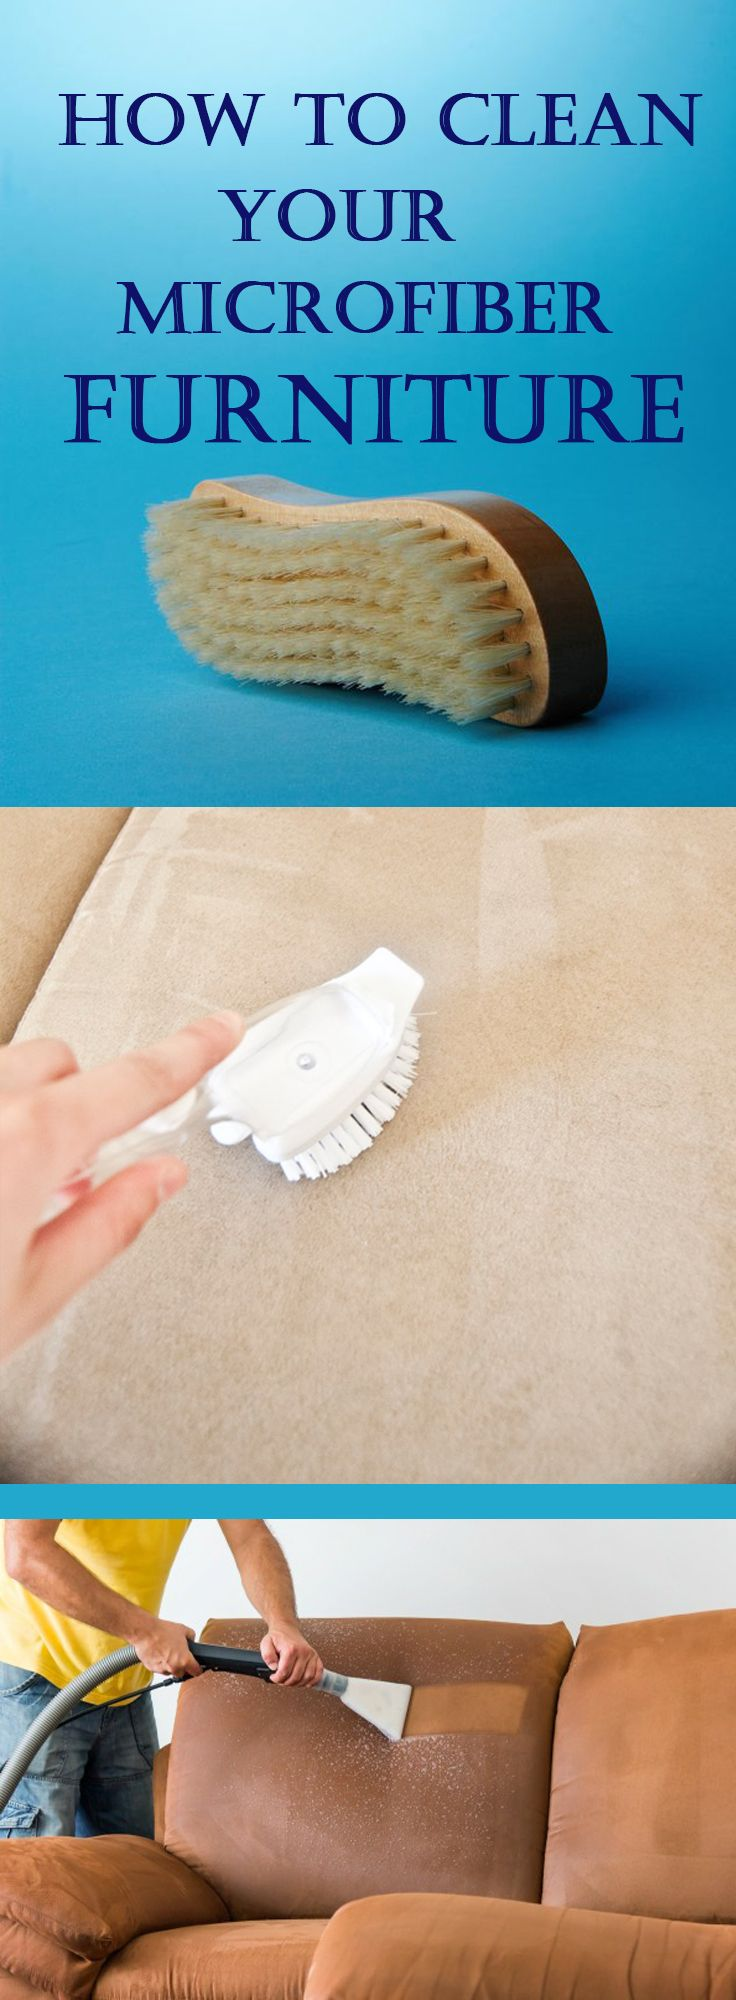 How to Clean Your Microfiber Furniture Home & Yard